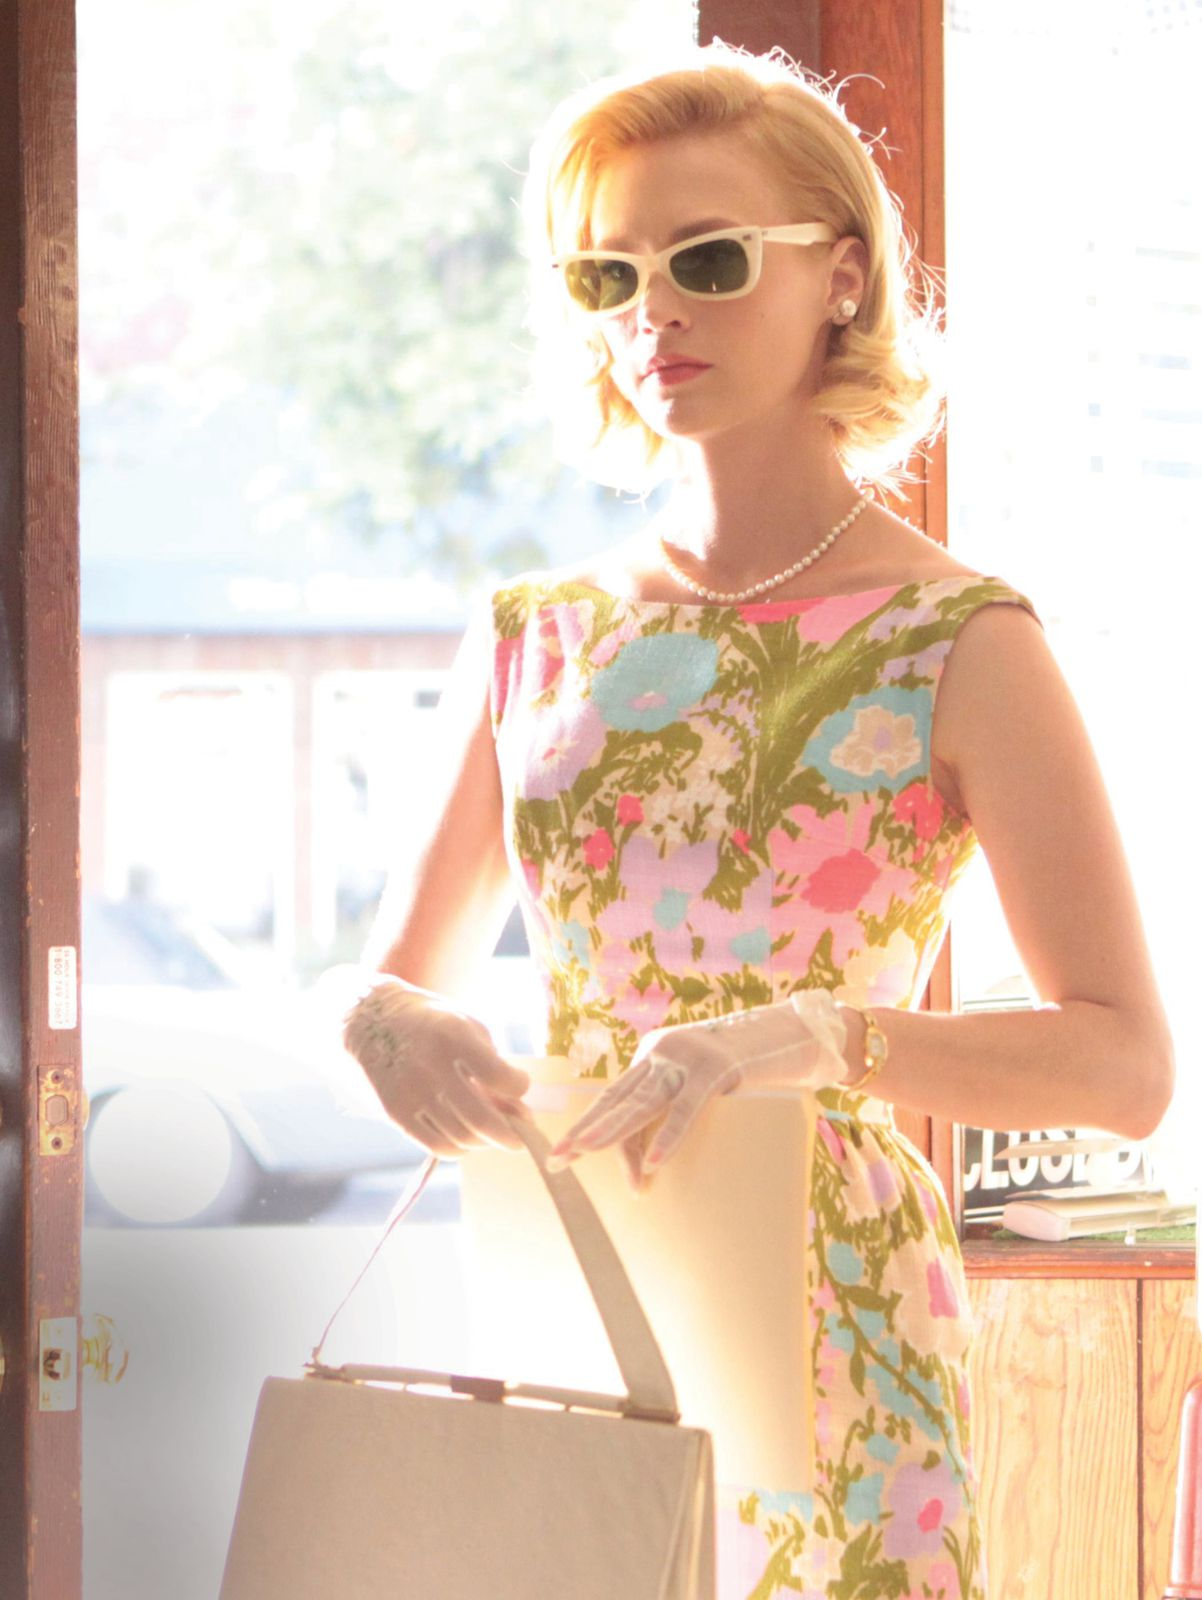 c41-Betty_floral-dress-and-sunglasses.jpg